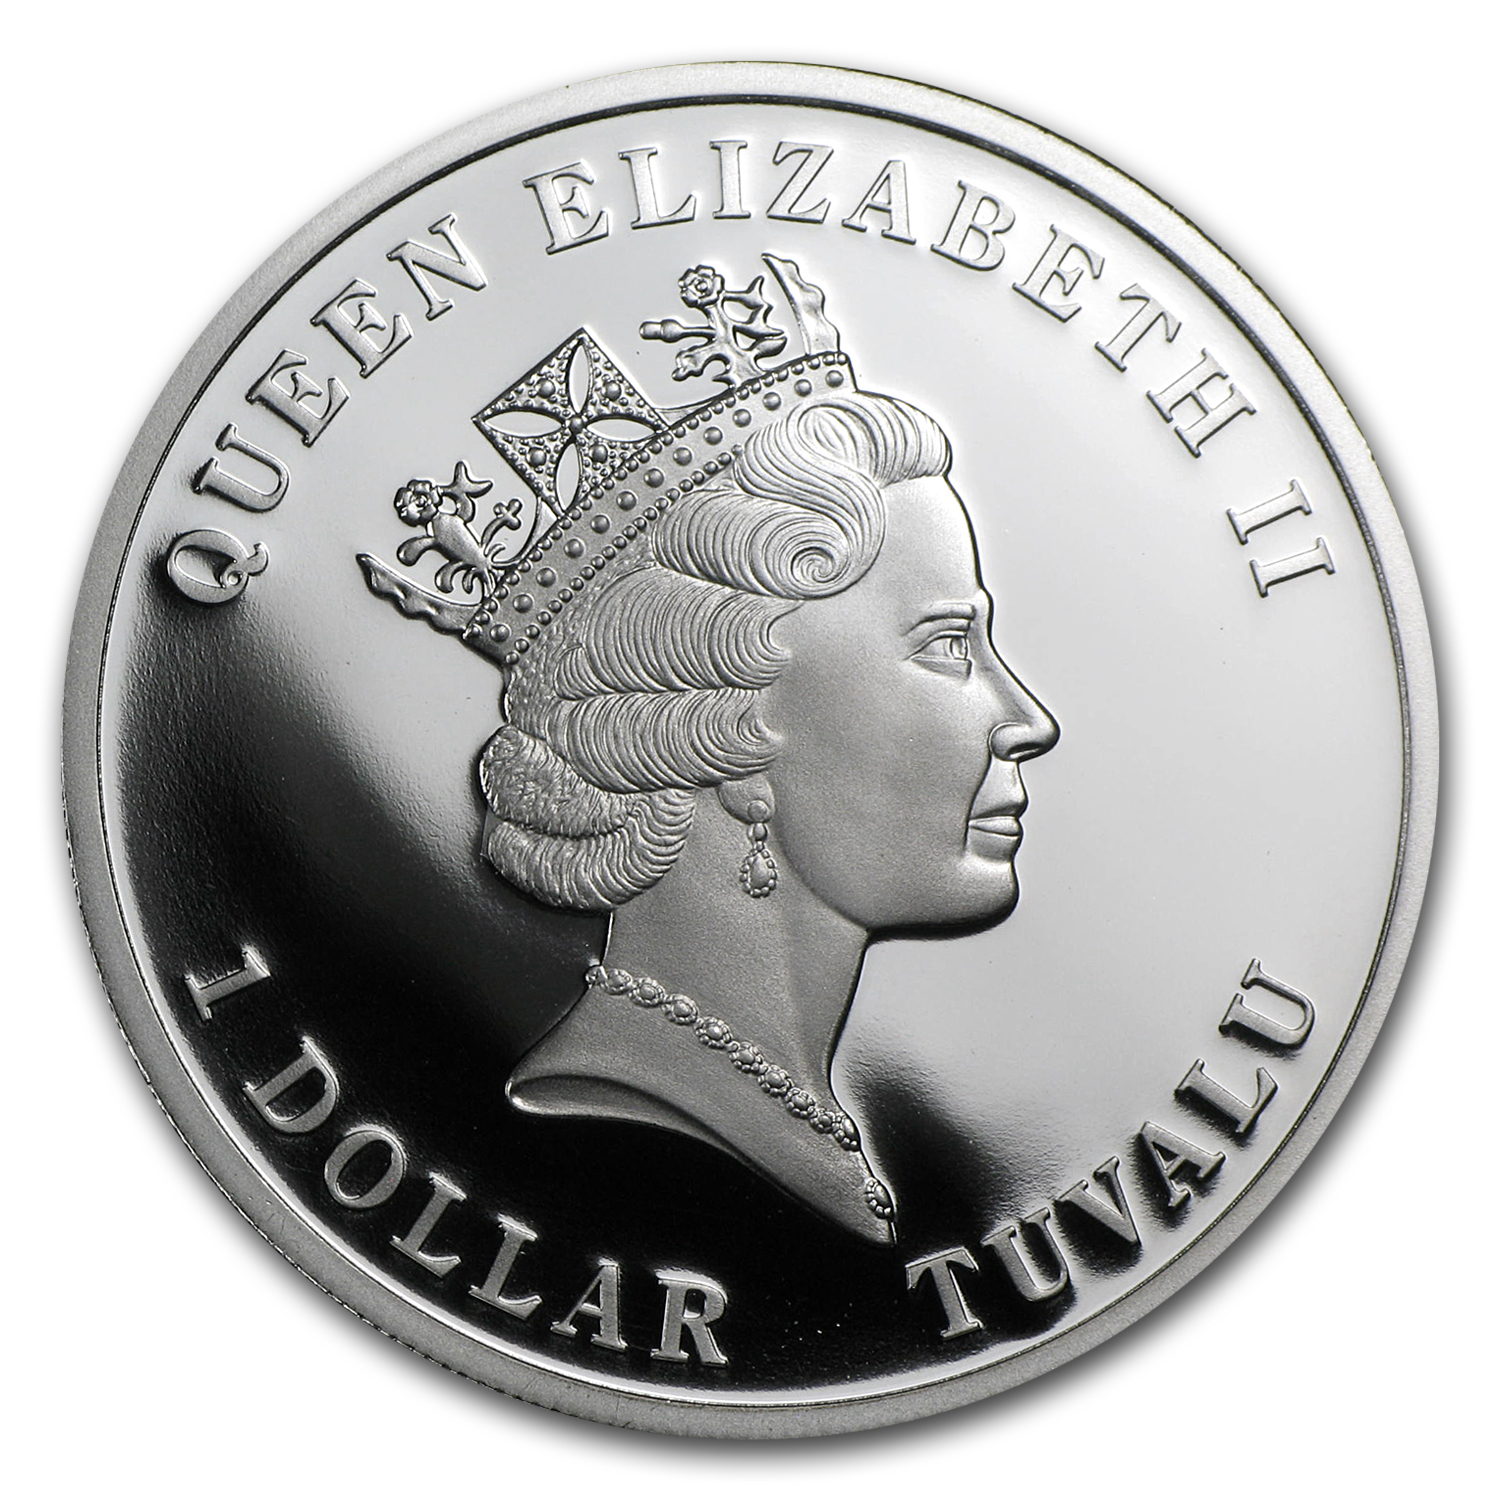 Tuvalu 2011 Proof Silver $1 Coral Protection - Pillar Coral